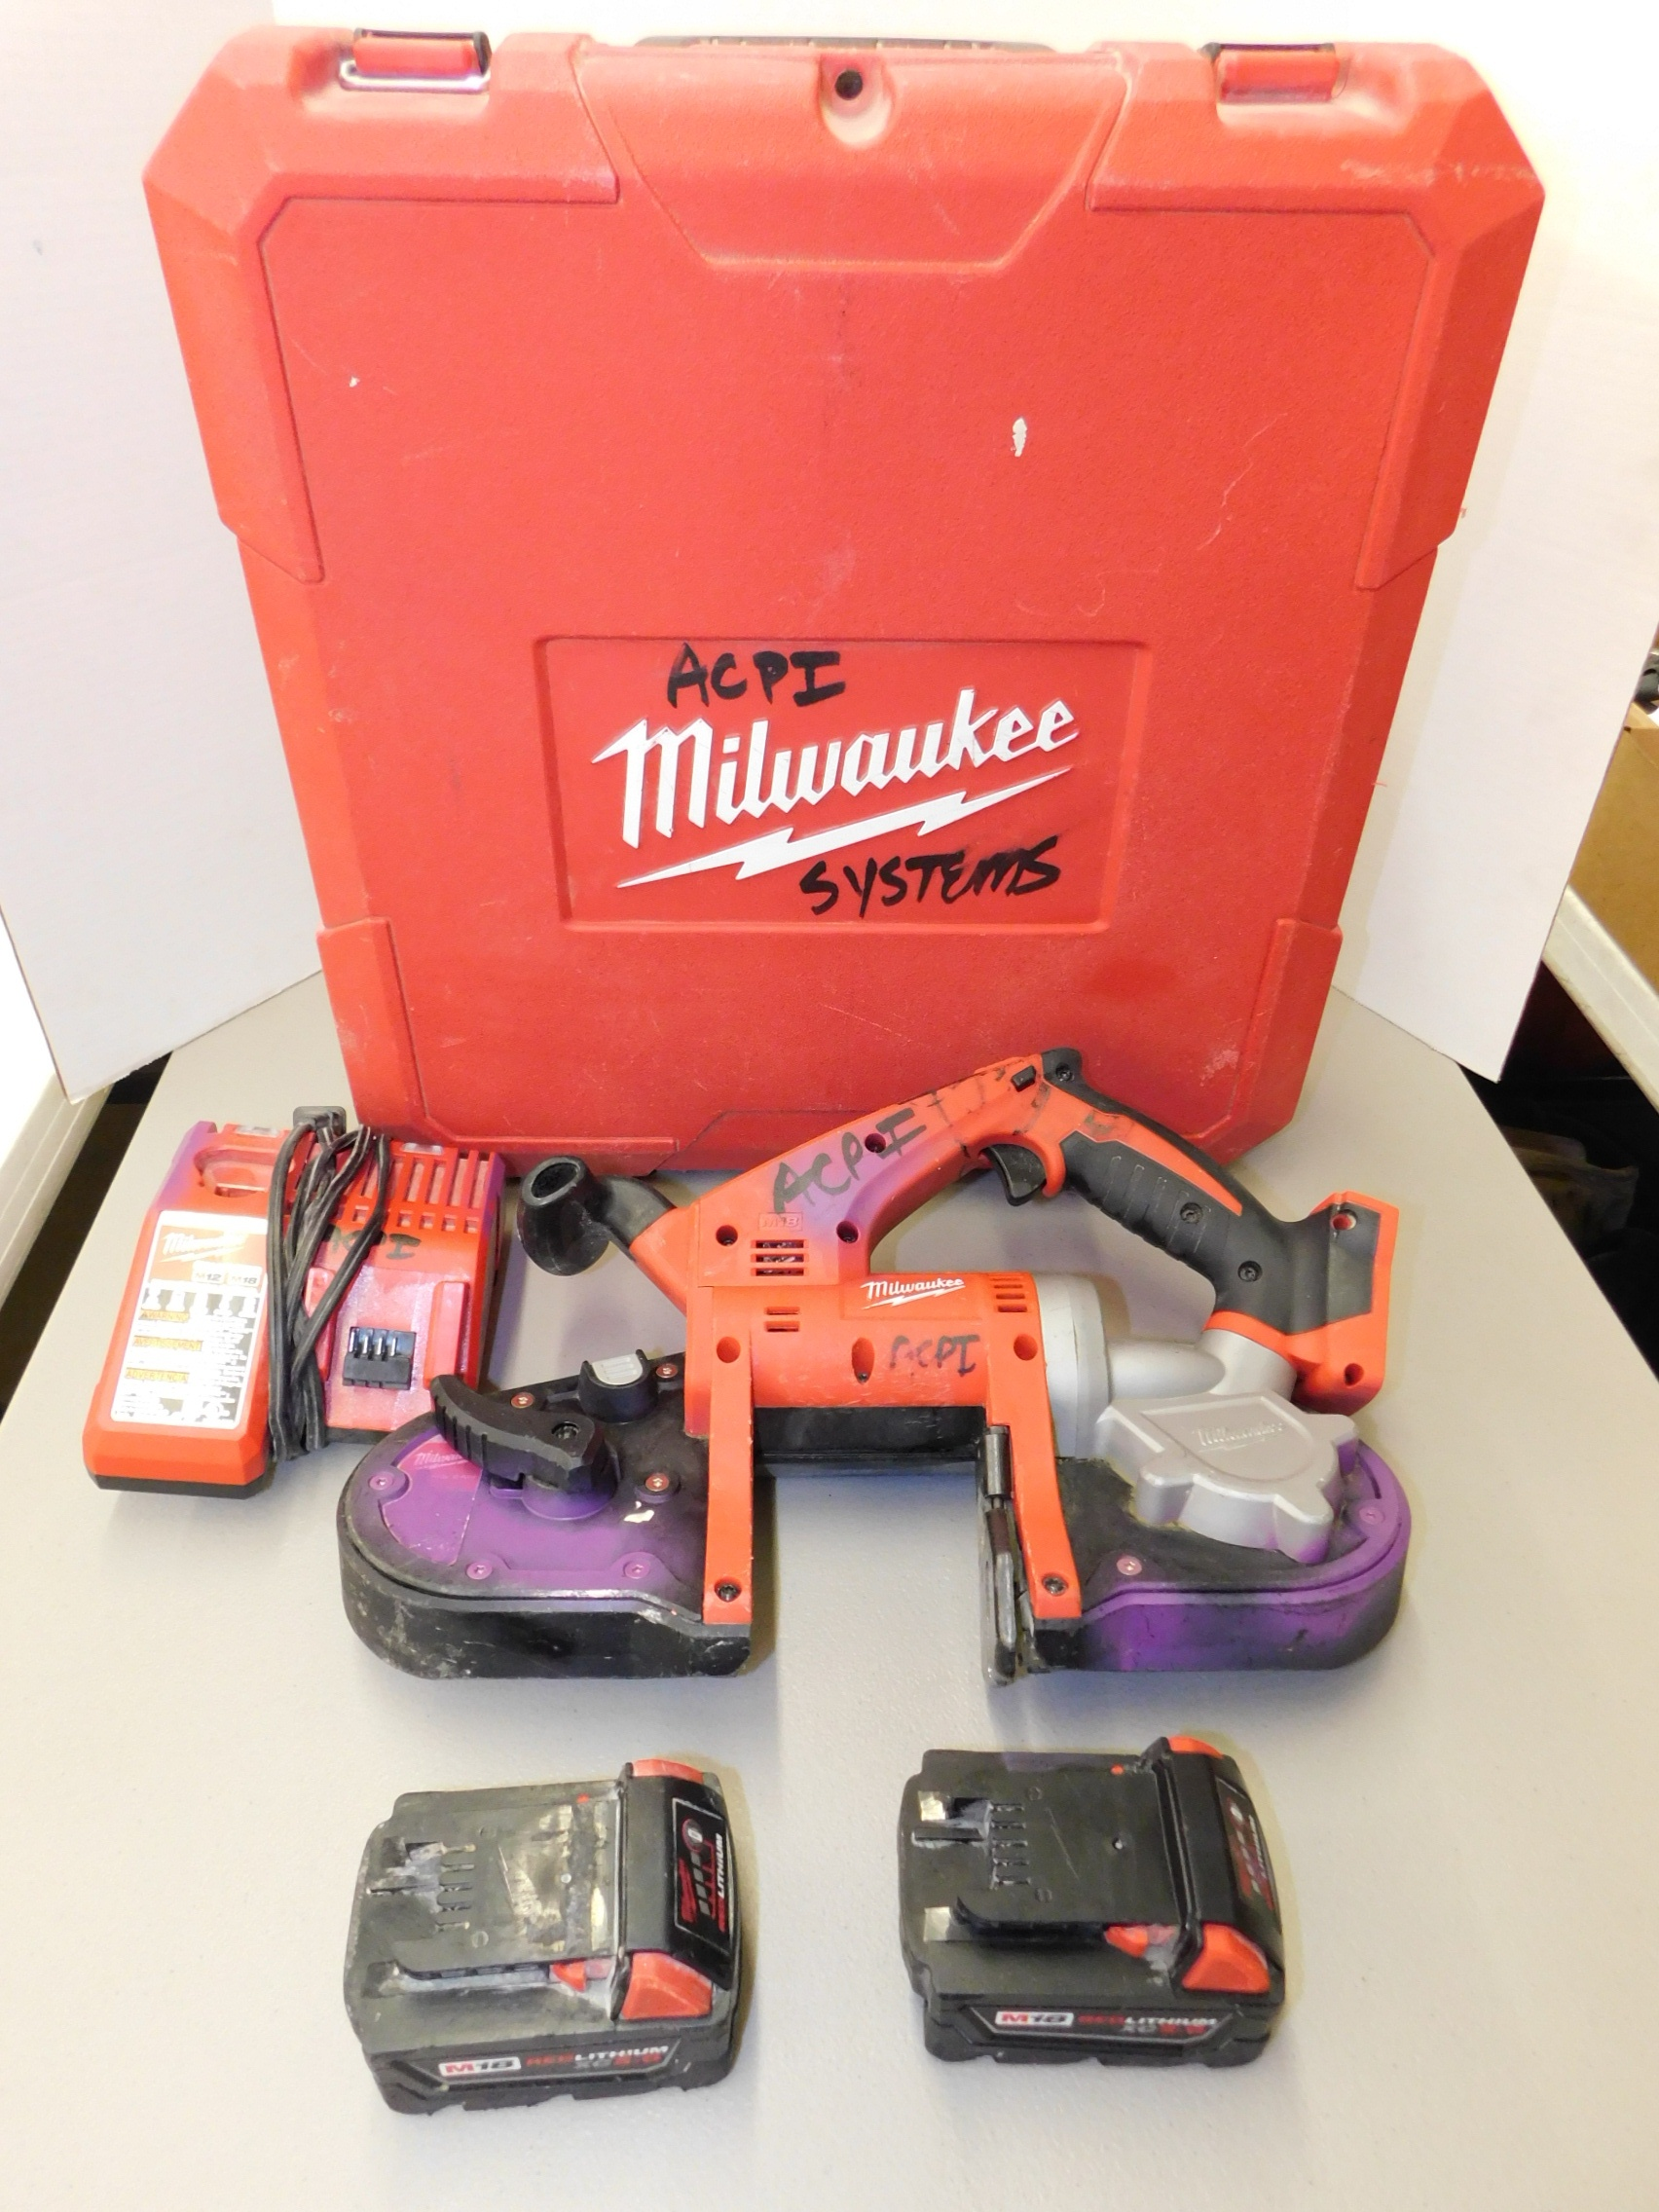 Lot 259 - Milwaukee Model 2629-20 18V Cordless Portable Bandsaw with Battery and Charger